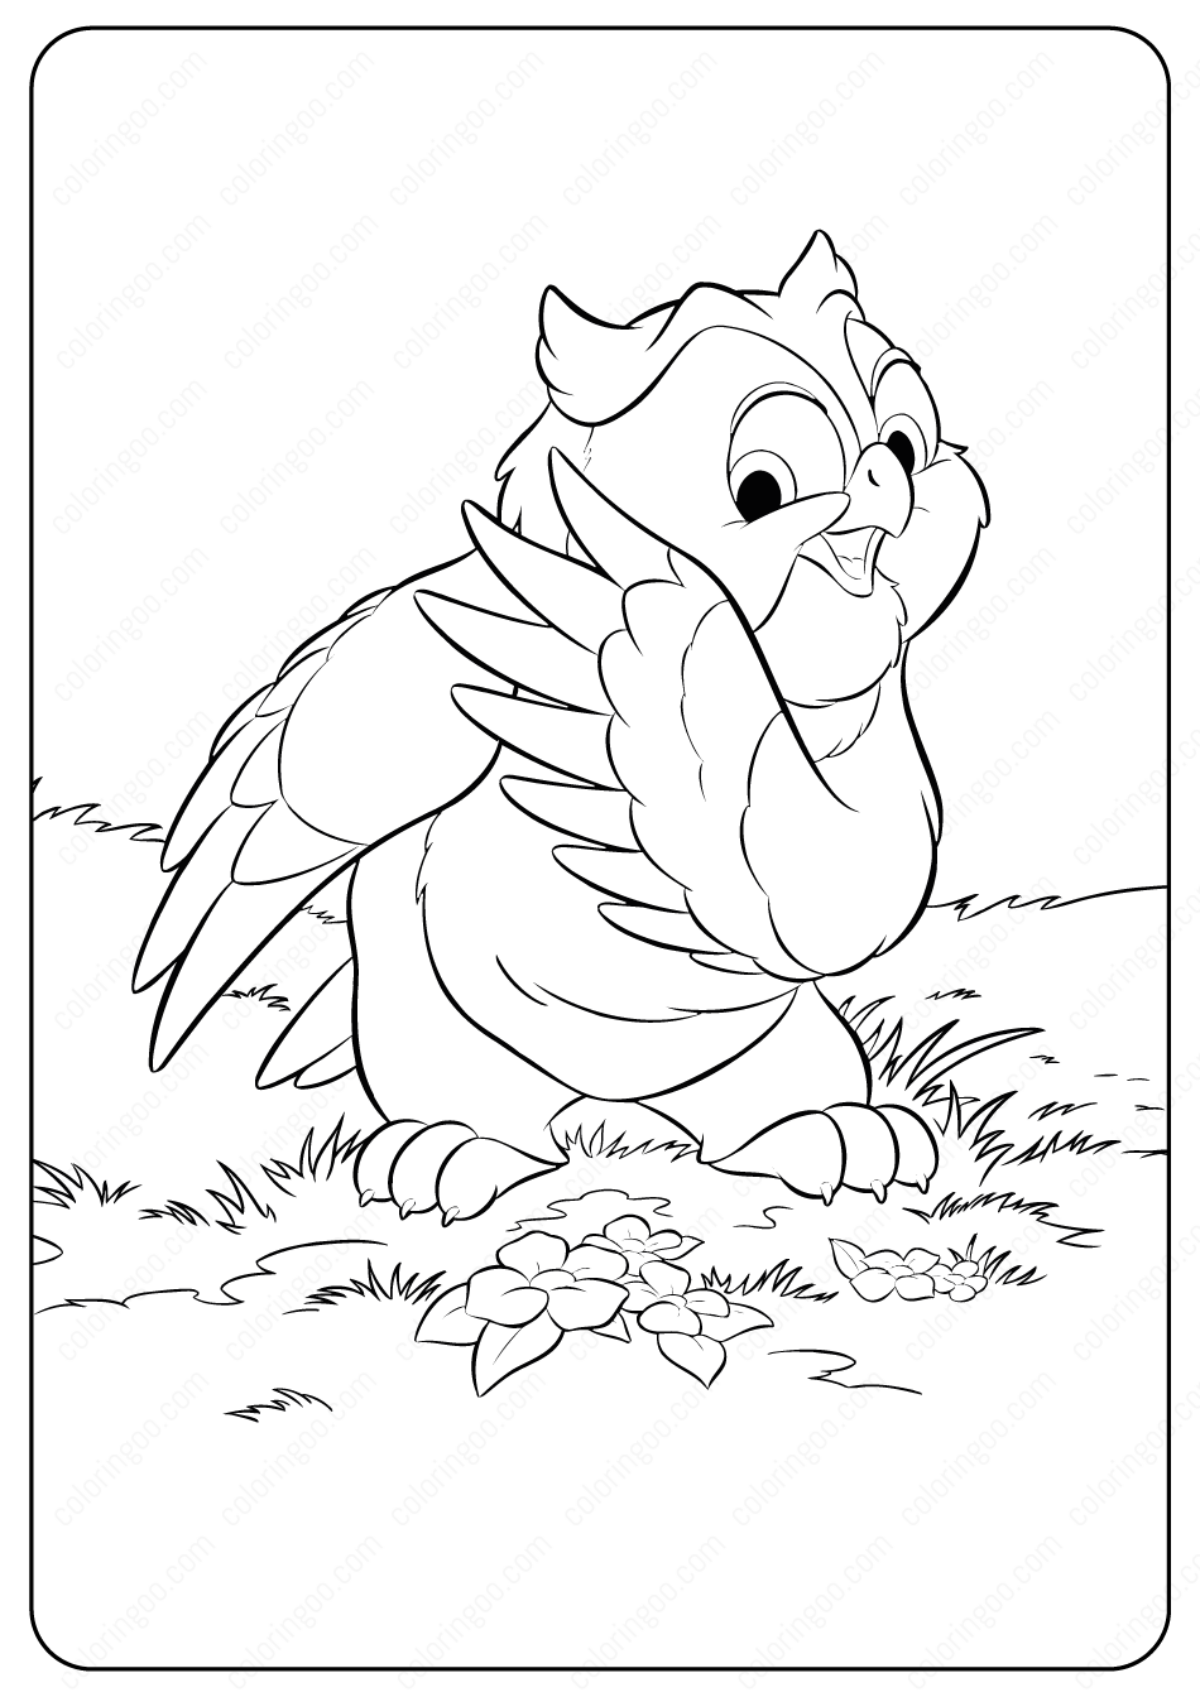 Printable Disney Bambi Friend Owl Coloring Pages